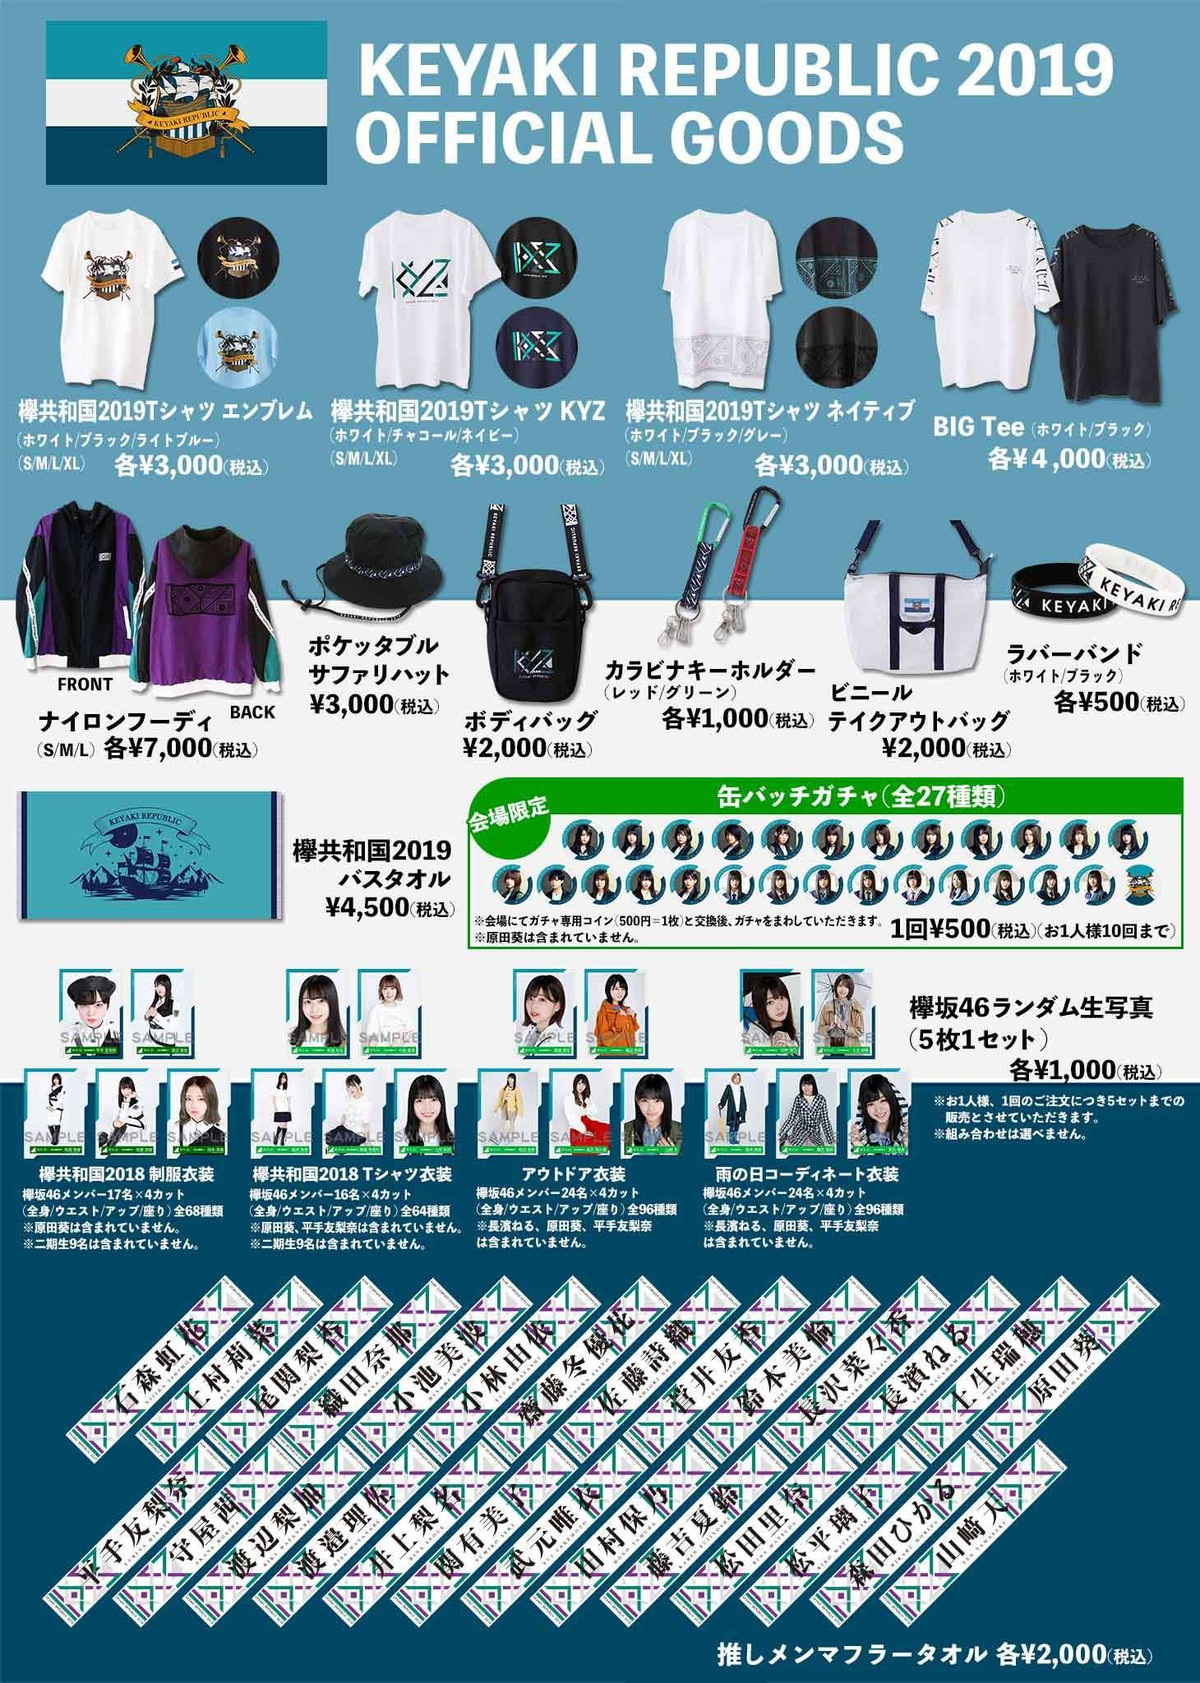 Keyakizaka46] Official goods of Keyaki Republic 2019 were released